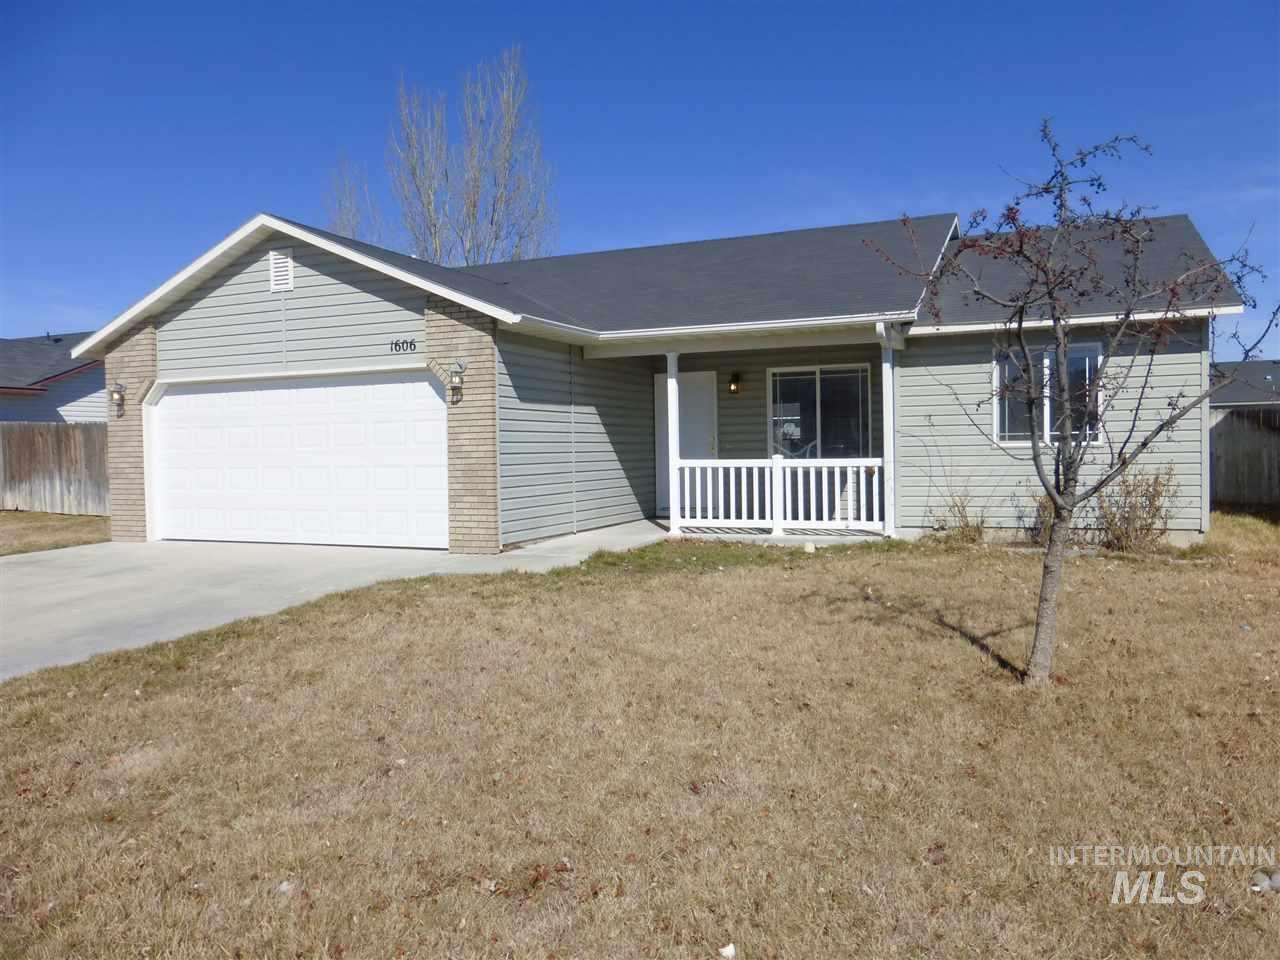 1606 W Meffan Ave, Nampa, Idaho 83651, 3 Bedrooms, 2 Bathrooms, Residential For Sale, Price $174,900, 98722116